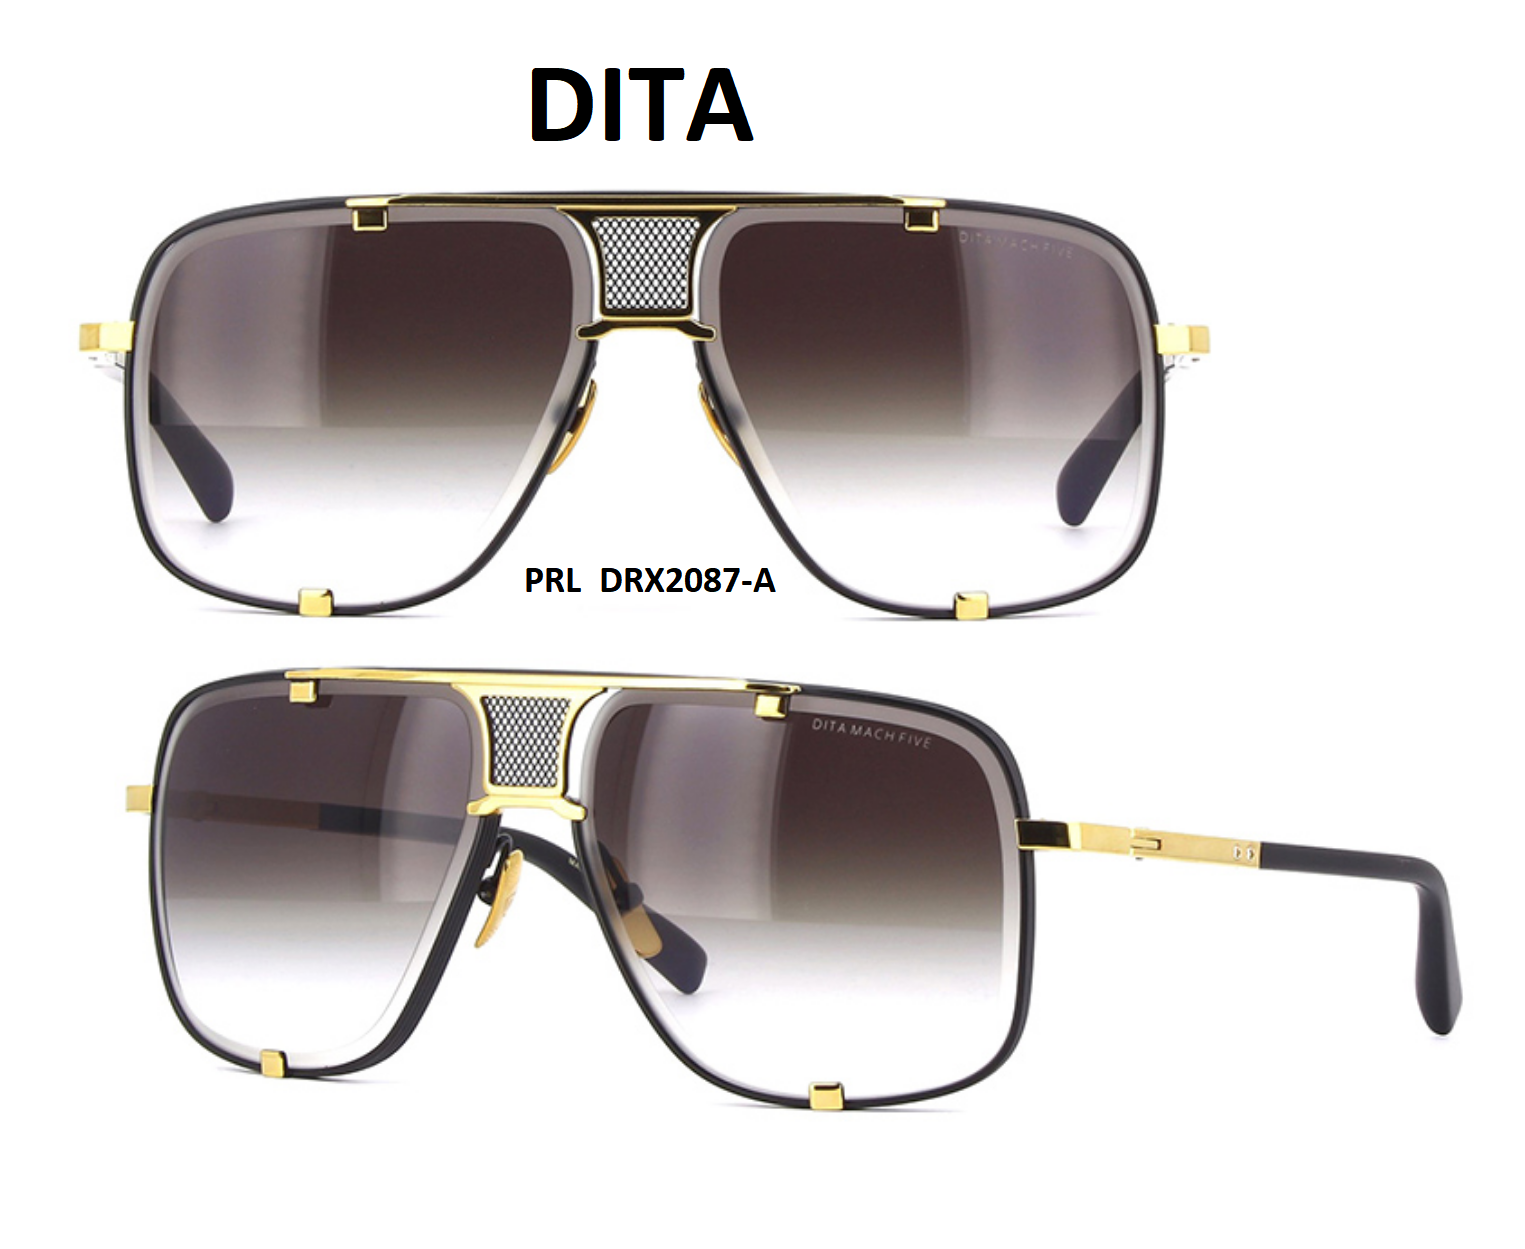 35c4b2b6d1 Dita Mach Five DRX 2087 A Sunglasses Matte Black-Yellow Gold Gray 100%  Authentic